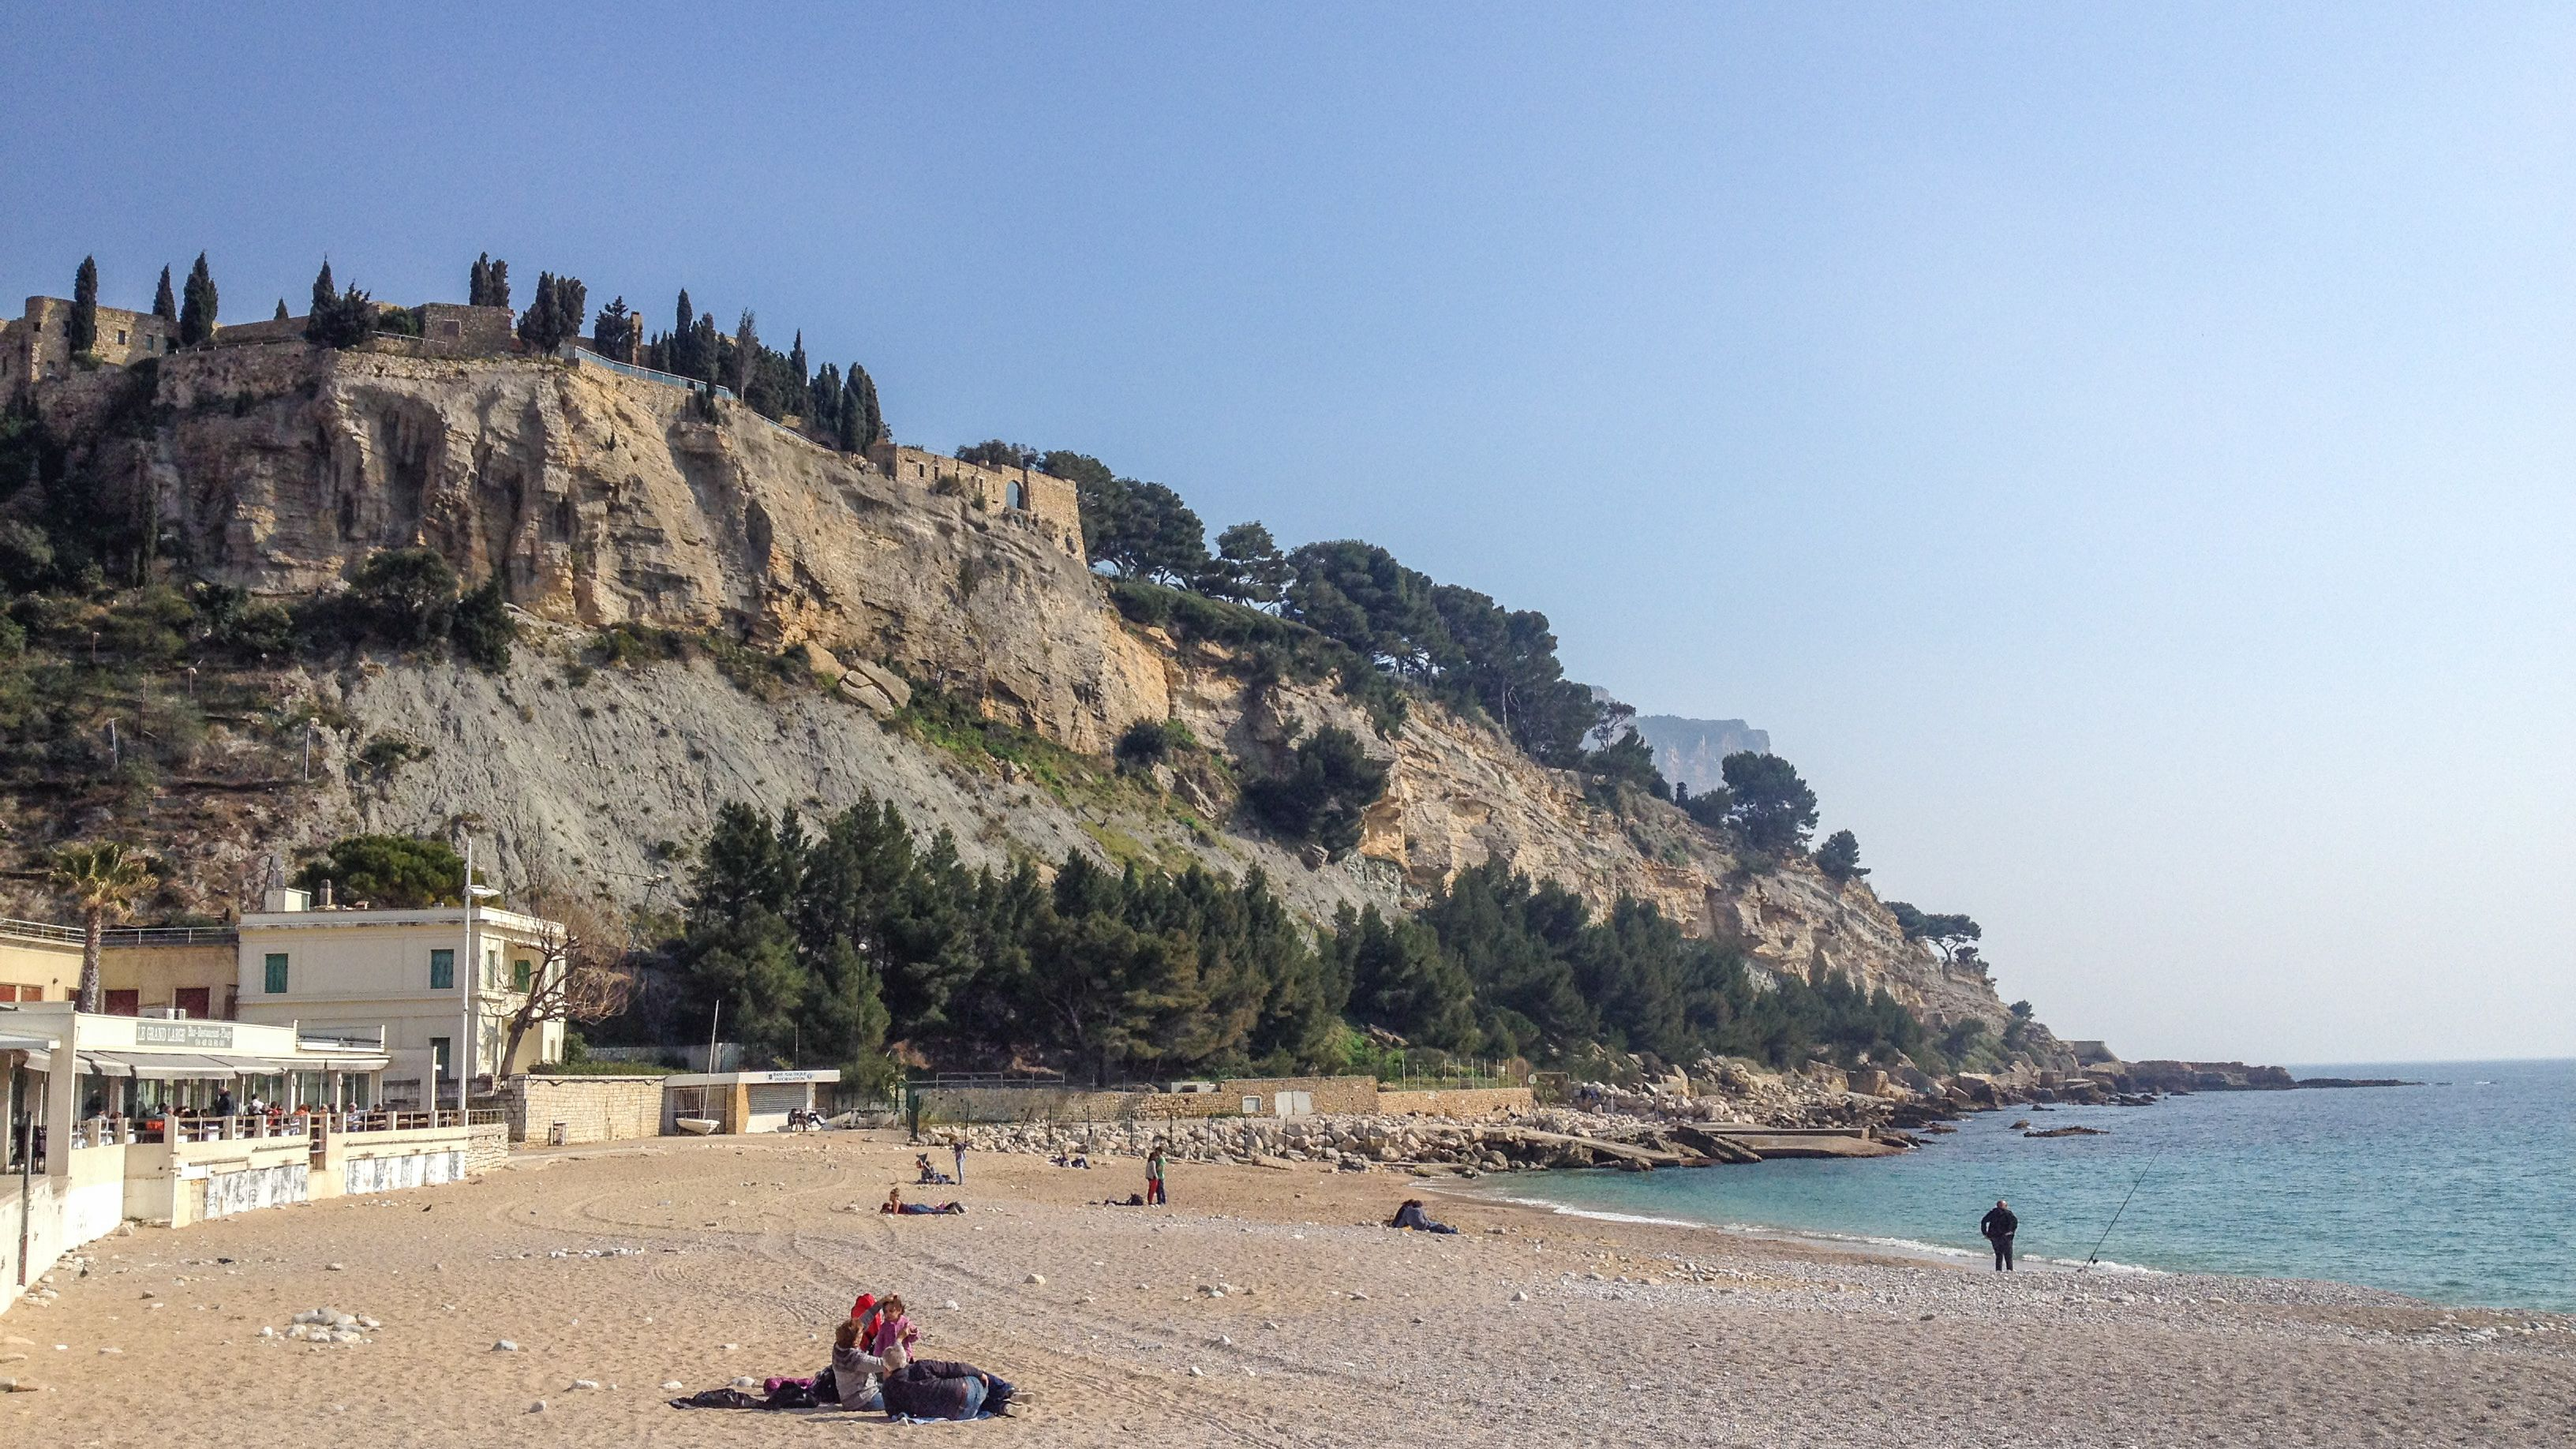 View of Cassis coast during the day.